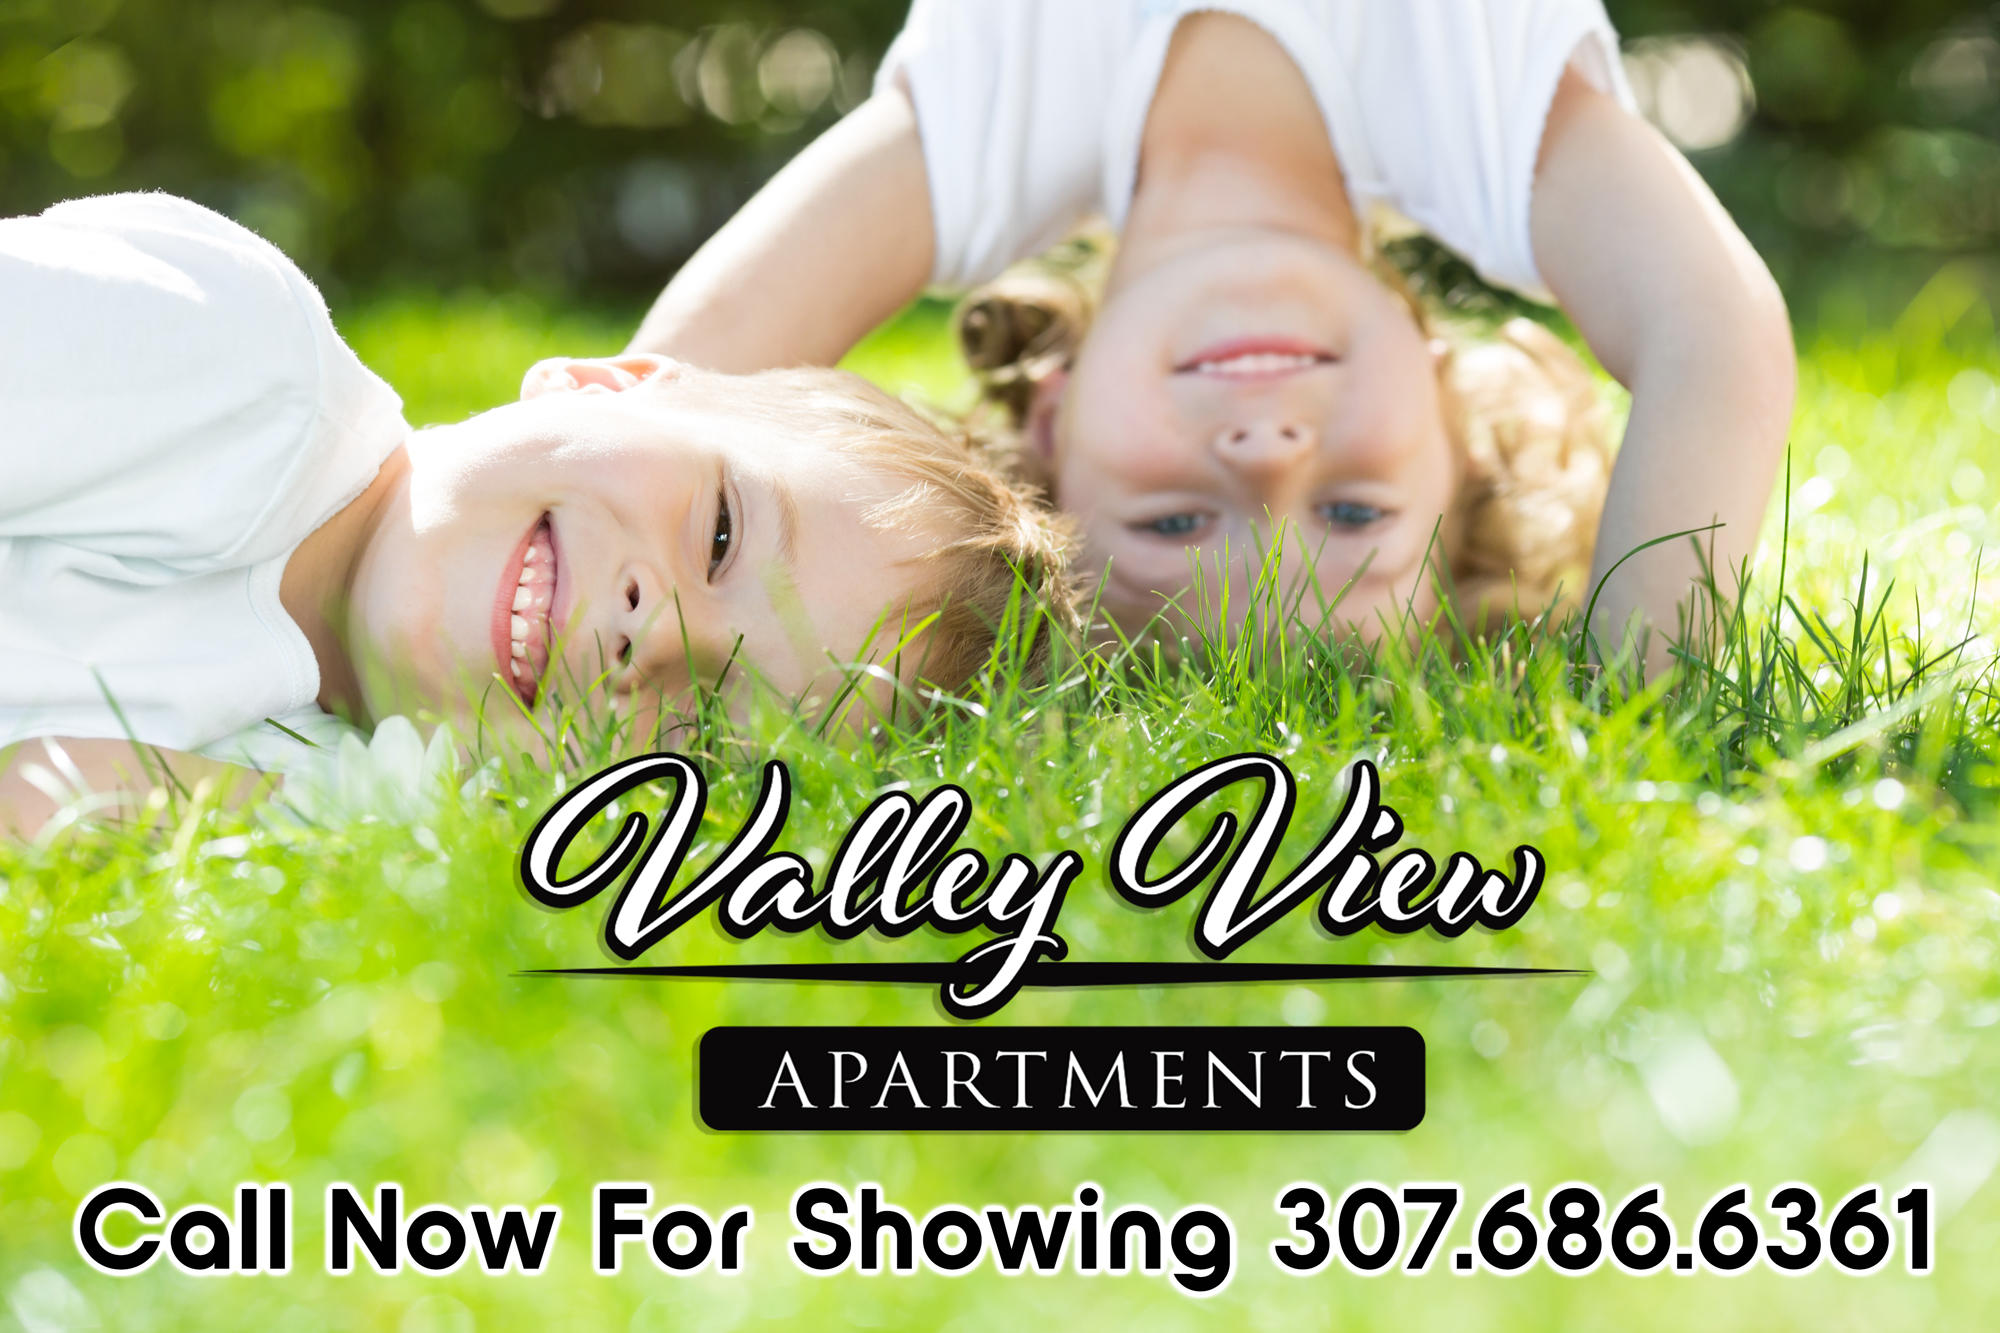 Valley View Apartments image 7